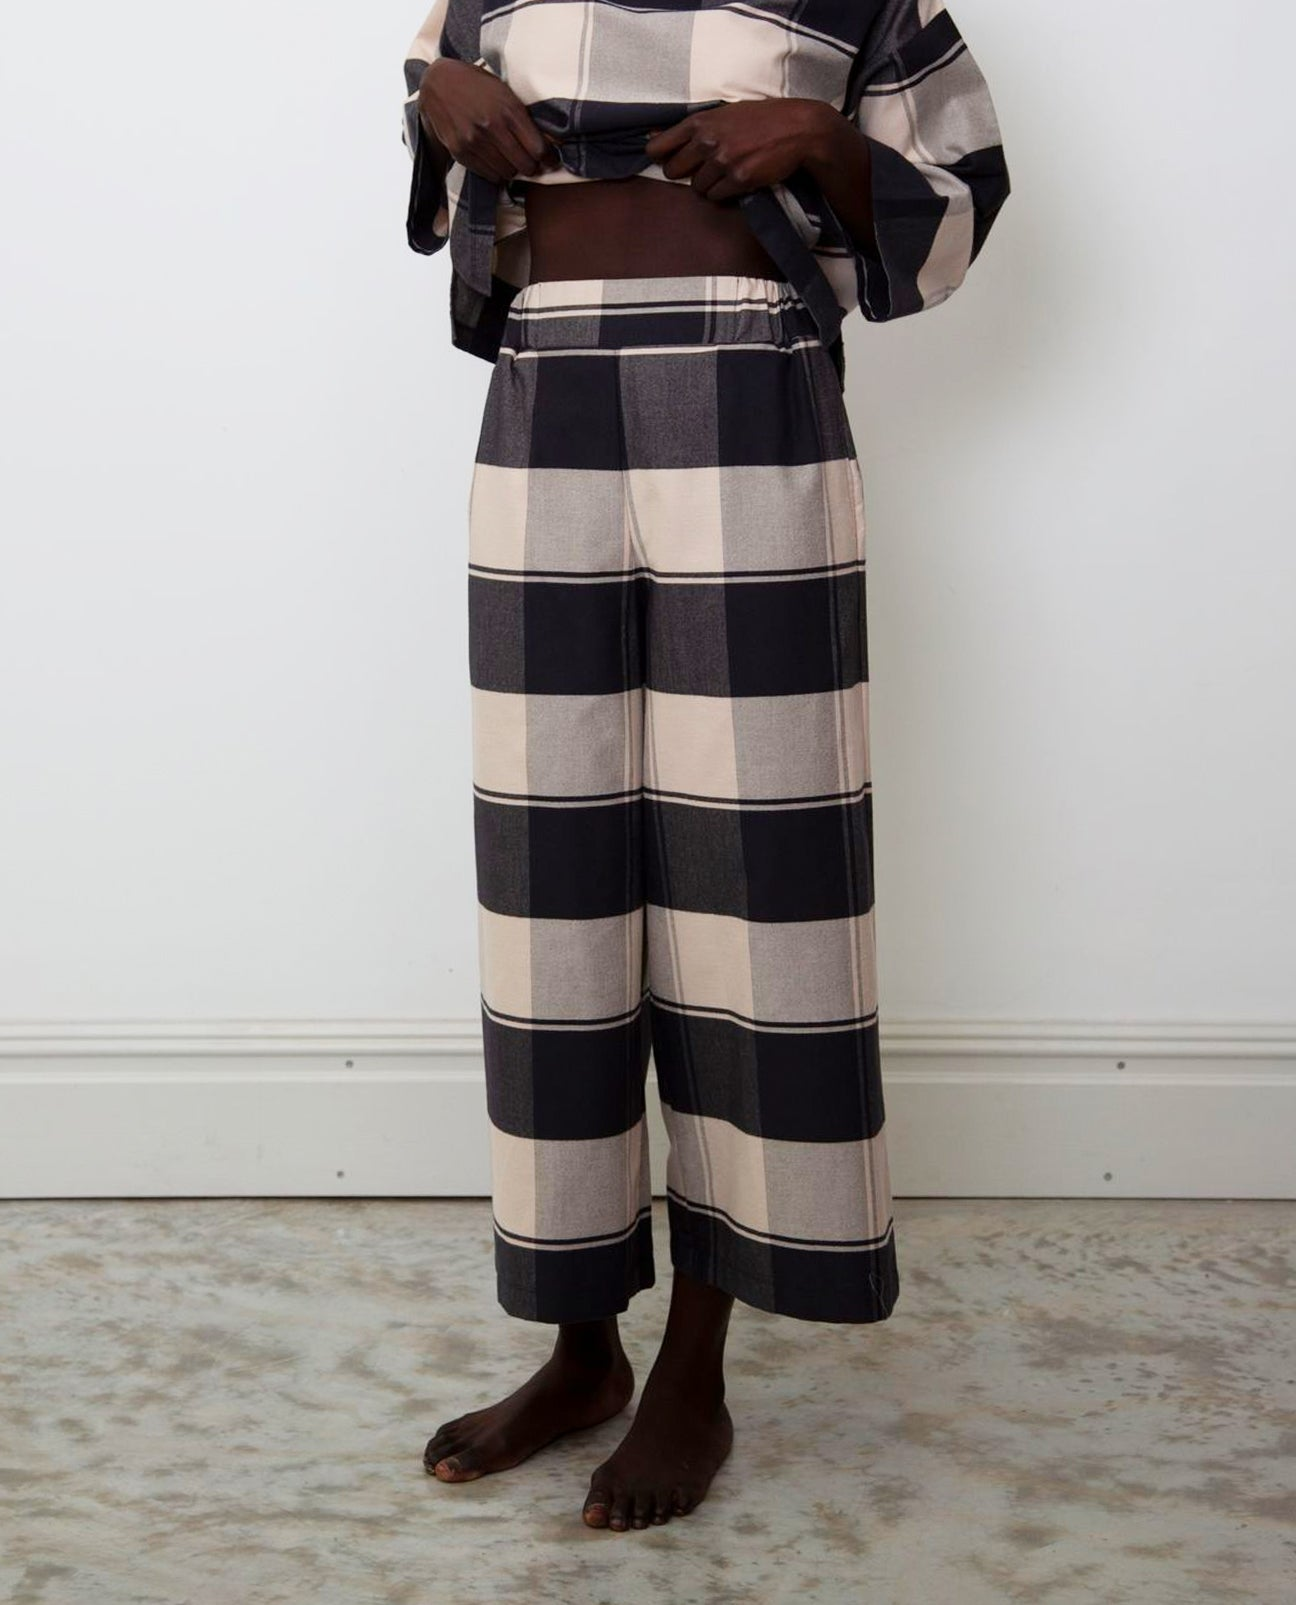 Winona-Cay Organic Cotton Trousers In Bold Check